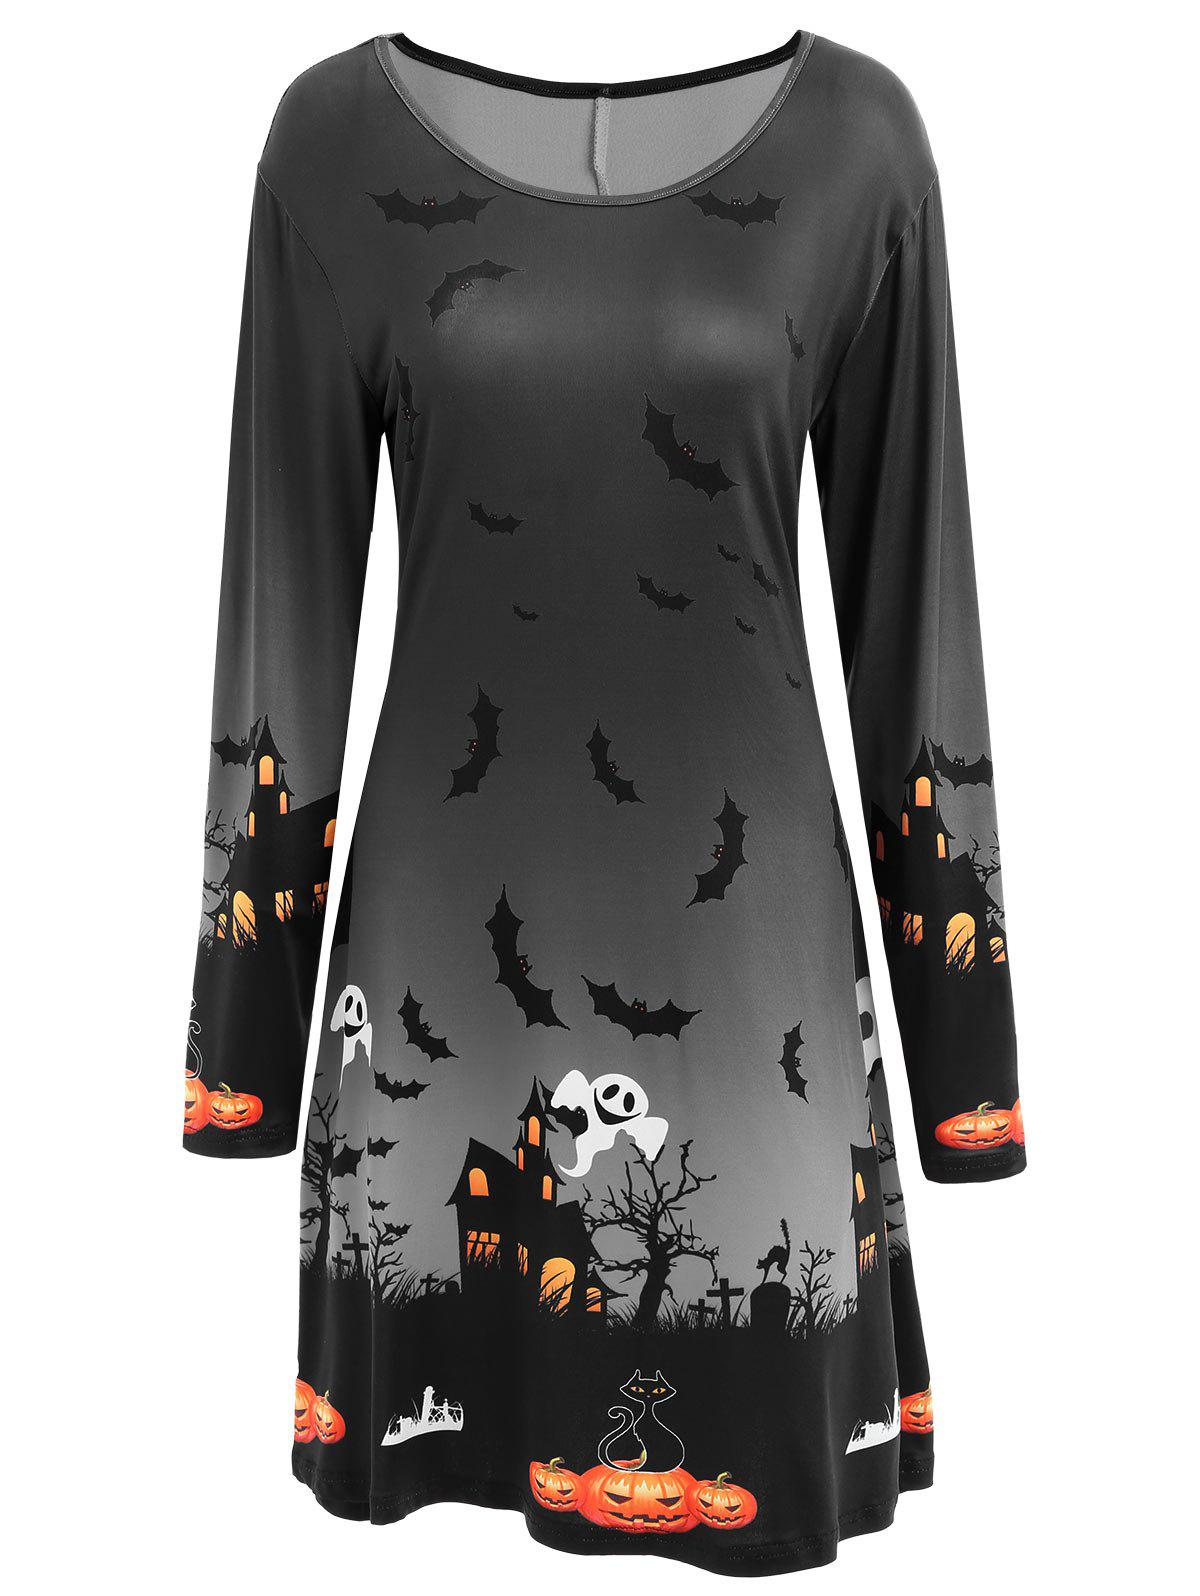 Pumpkin Bat Print Long Sleeve Halloween Swing Dress - DARK GREY S